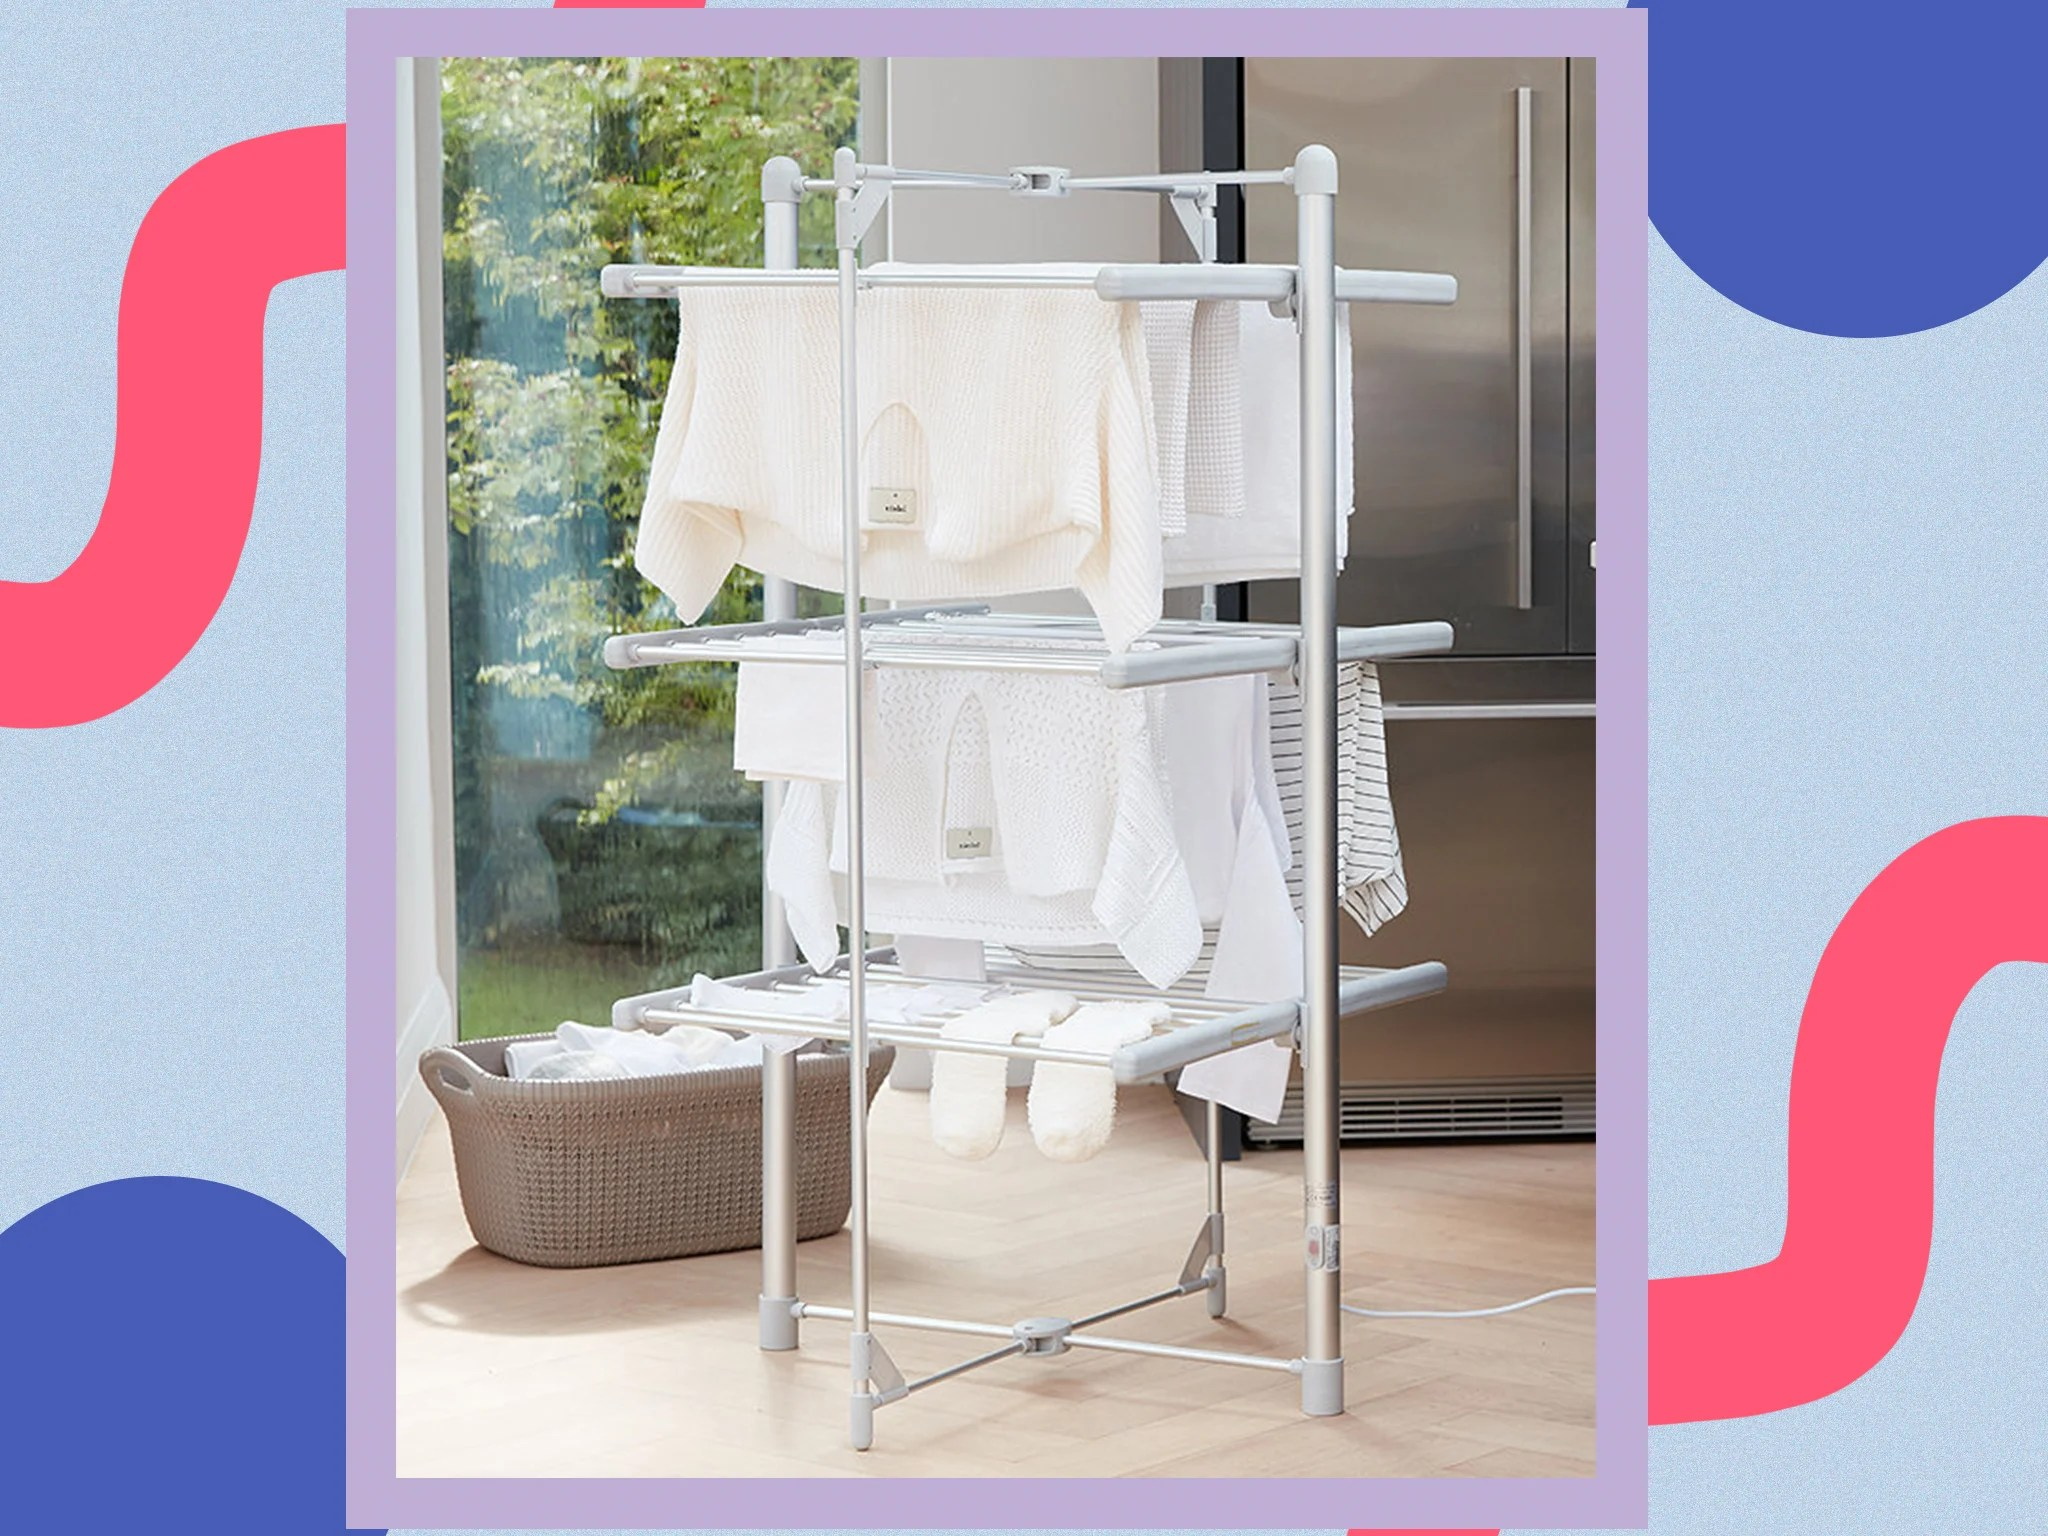 best clothes airers and drying racks